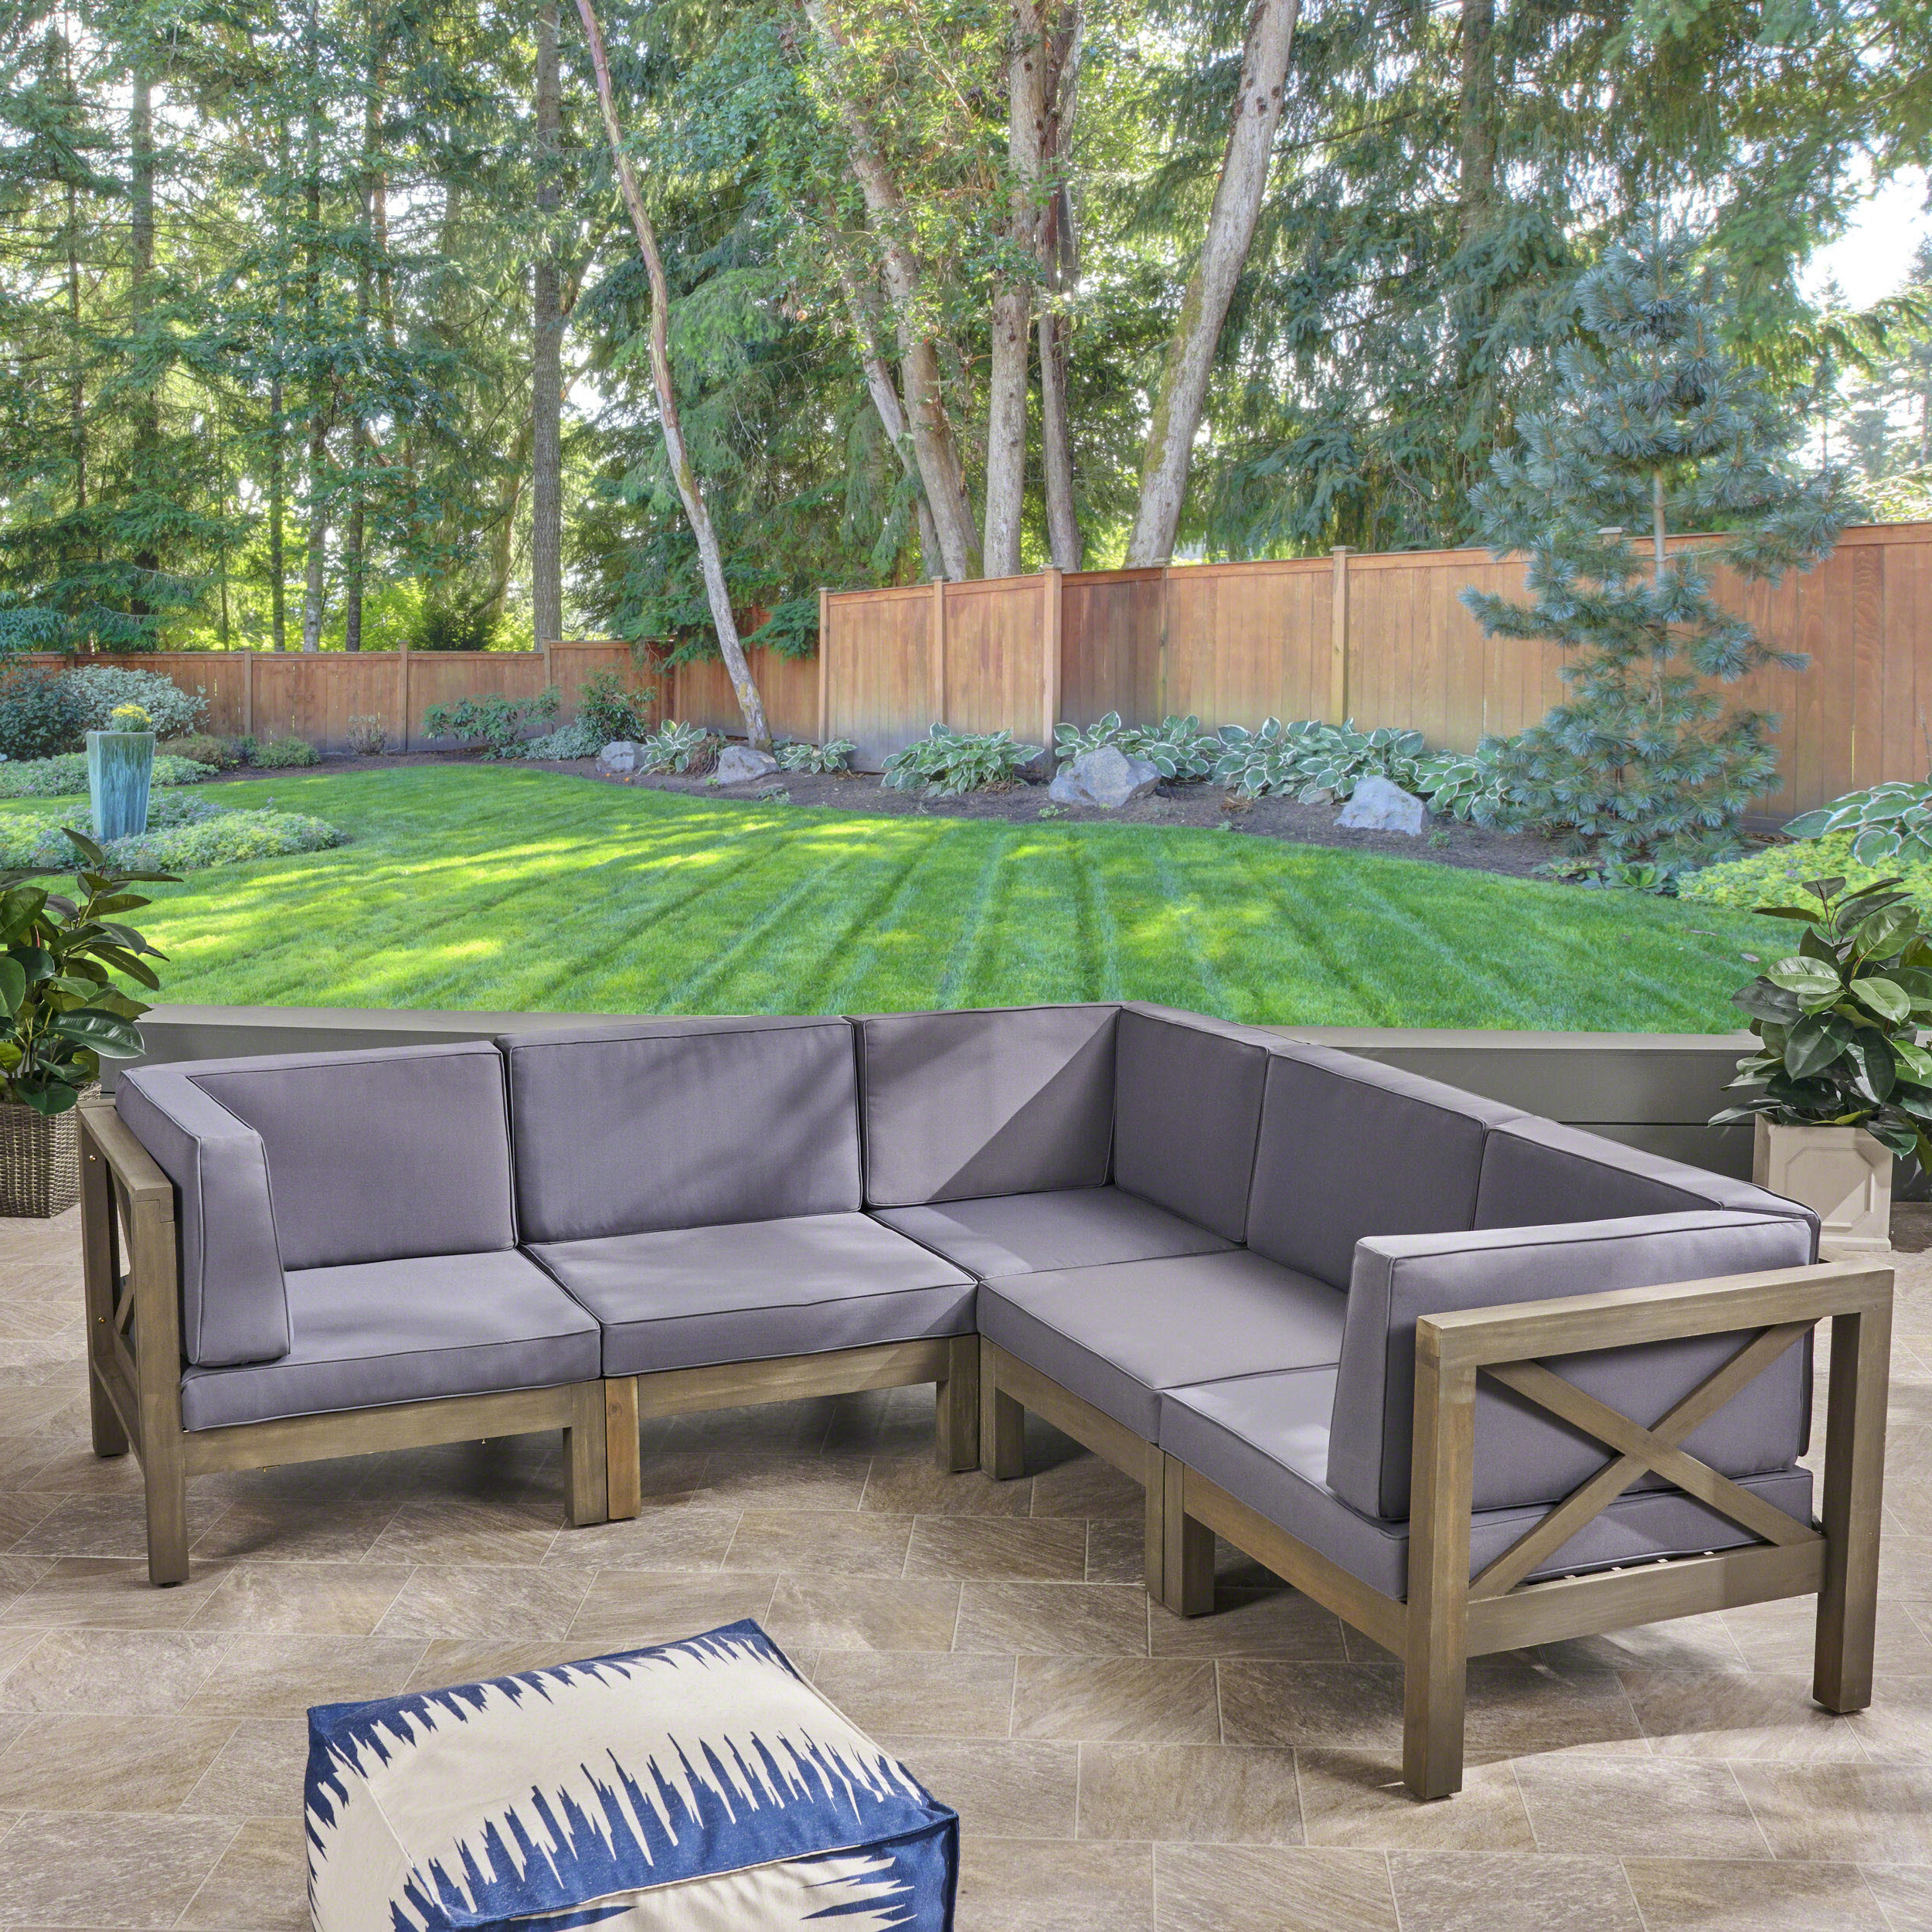 Famous Lorentzen Patio Sectionals With Cushions Intended For Ellison Patio Sectional With Cushions (View 2 of 20)